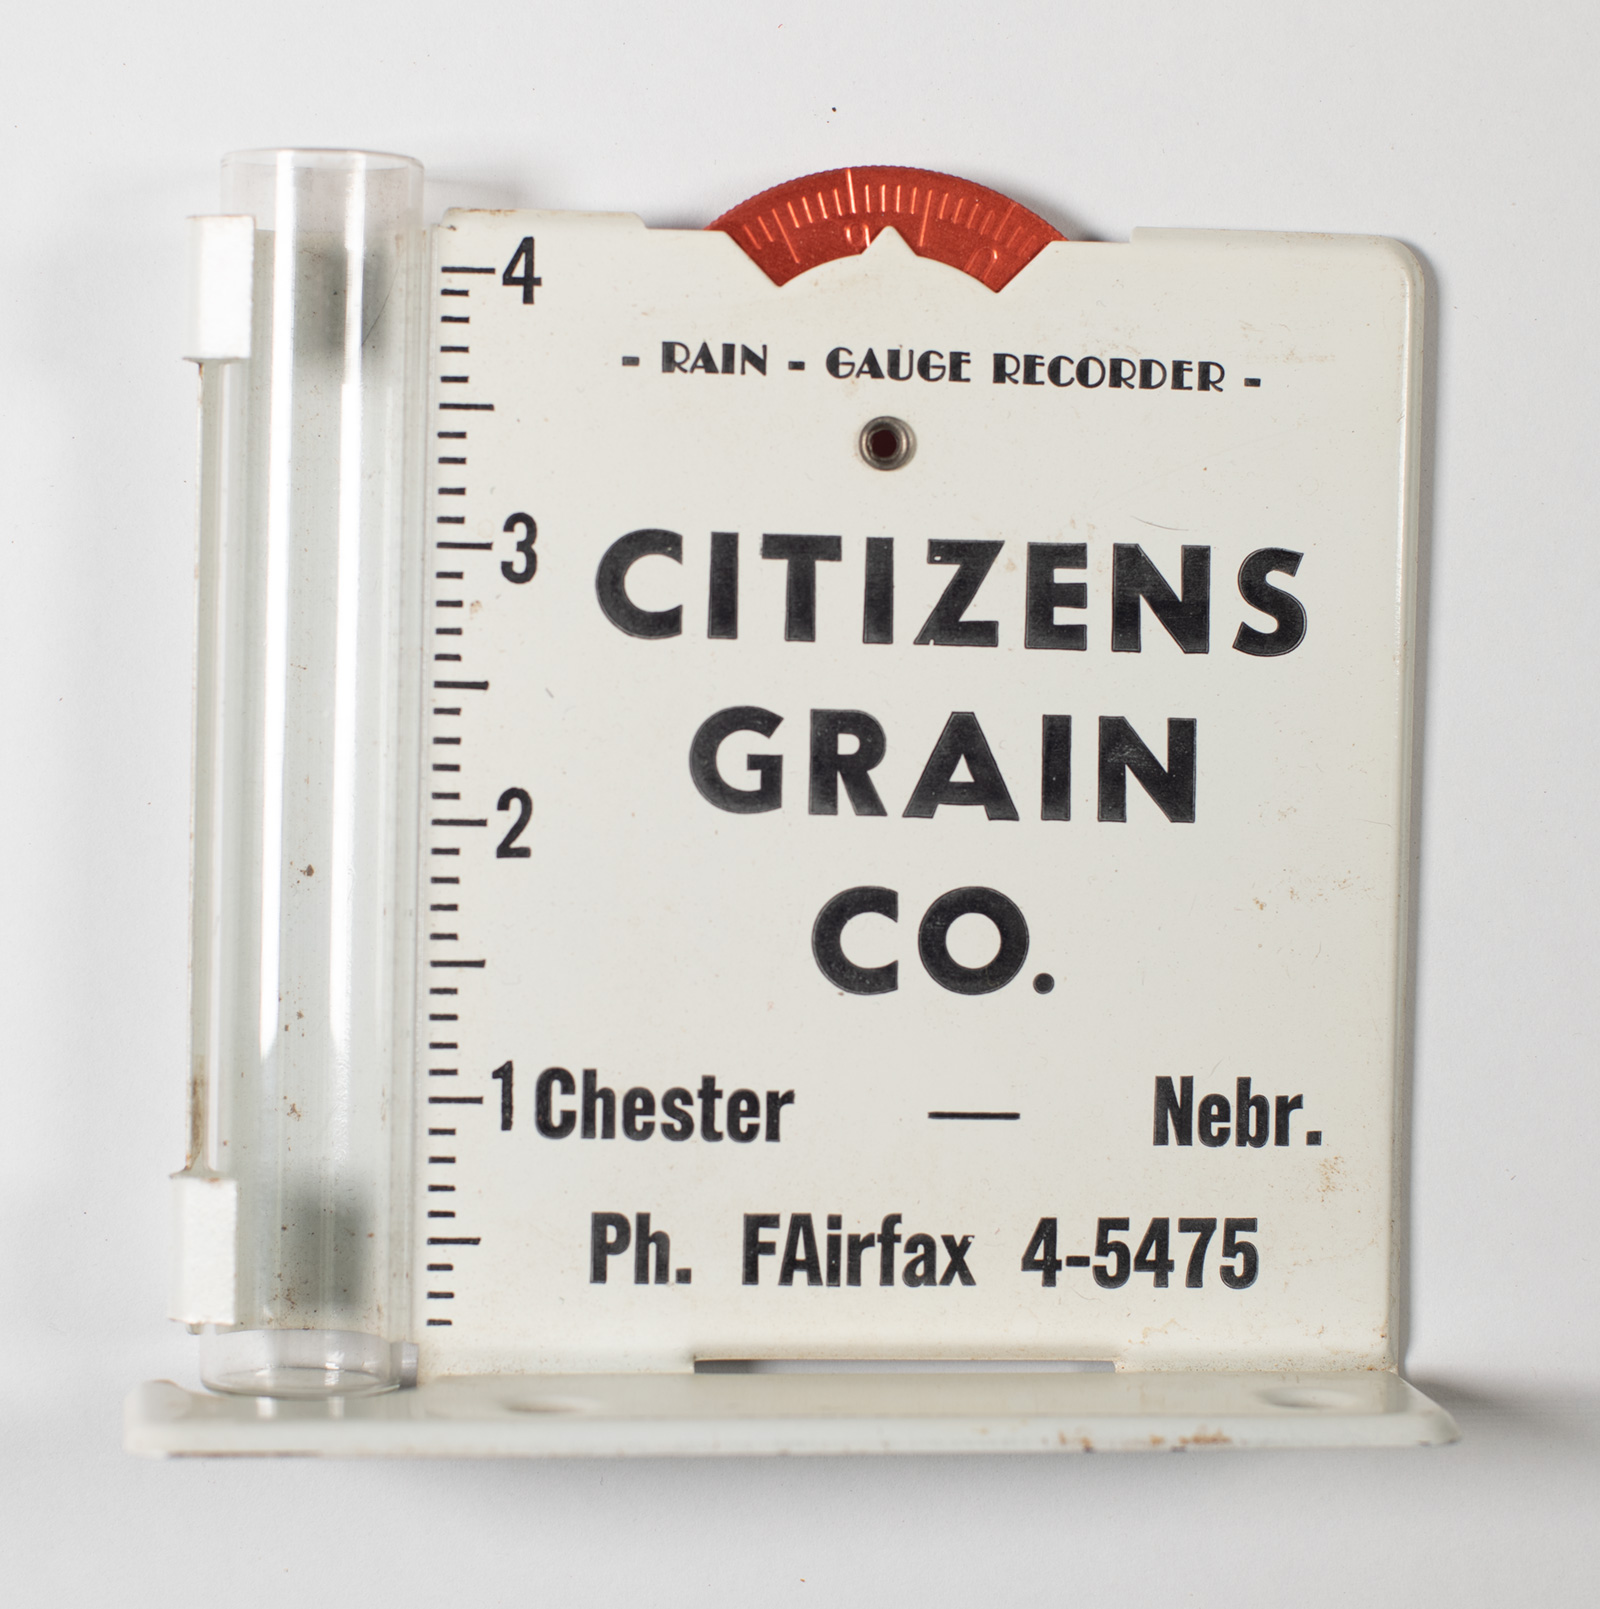 Citizens Grain Co -Rain Gauge Image